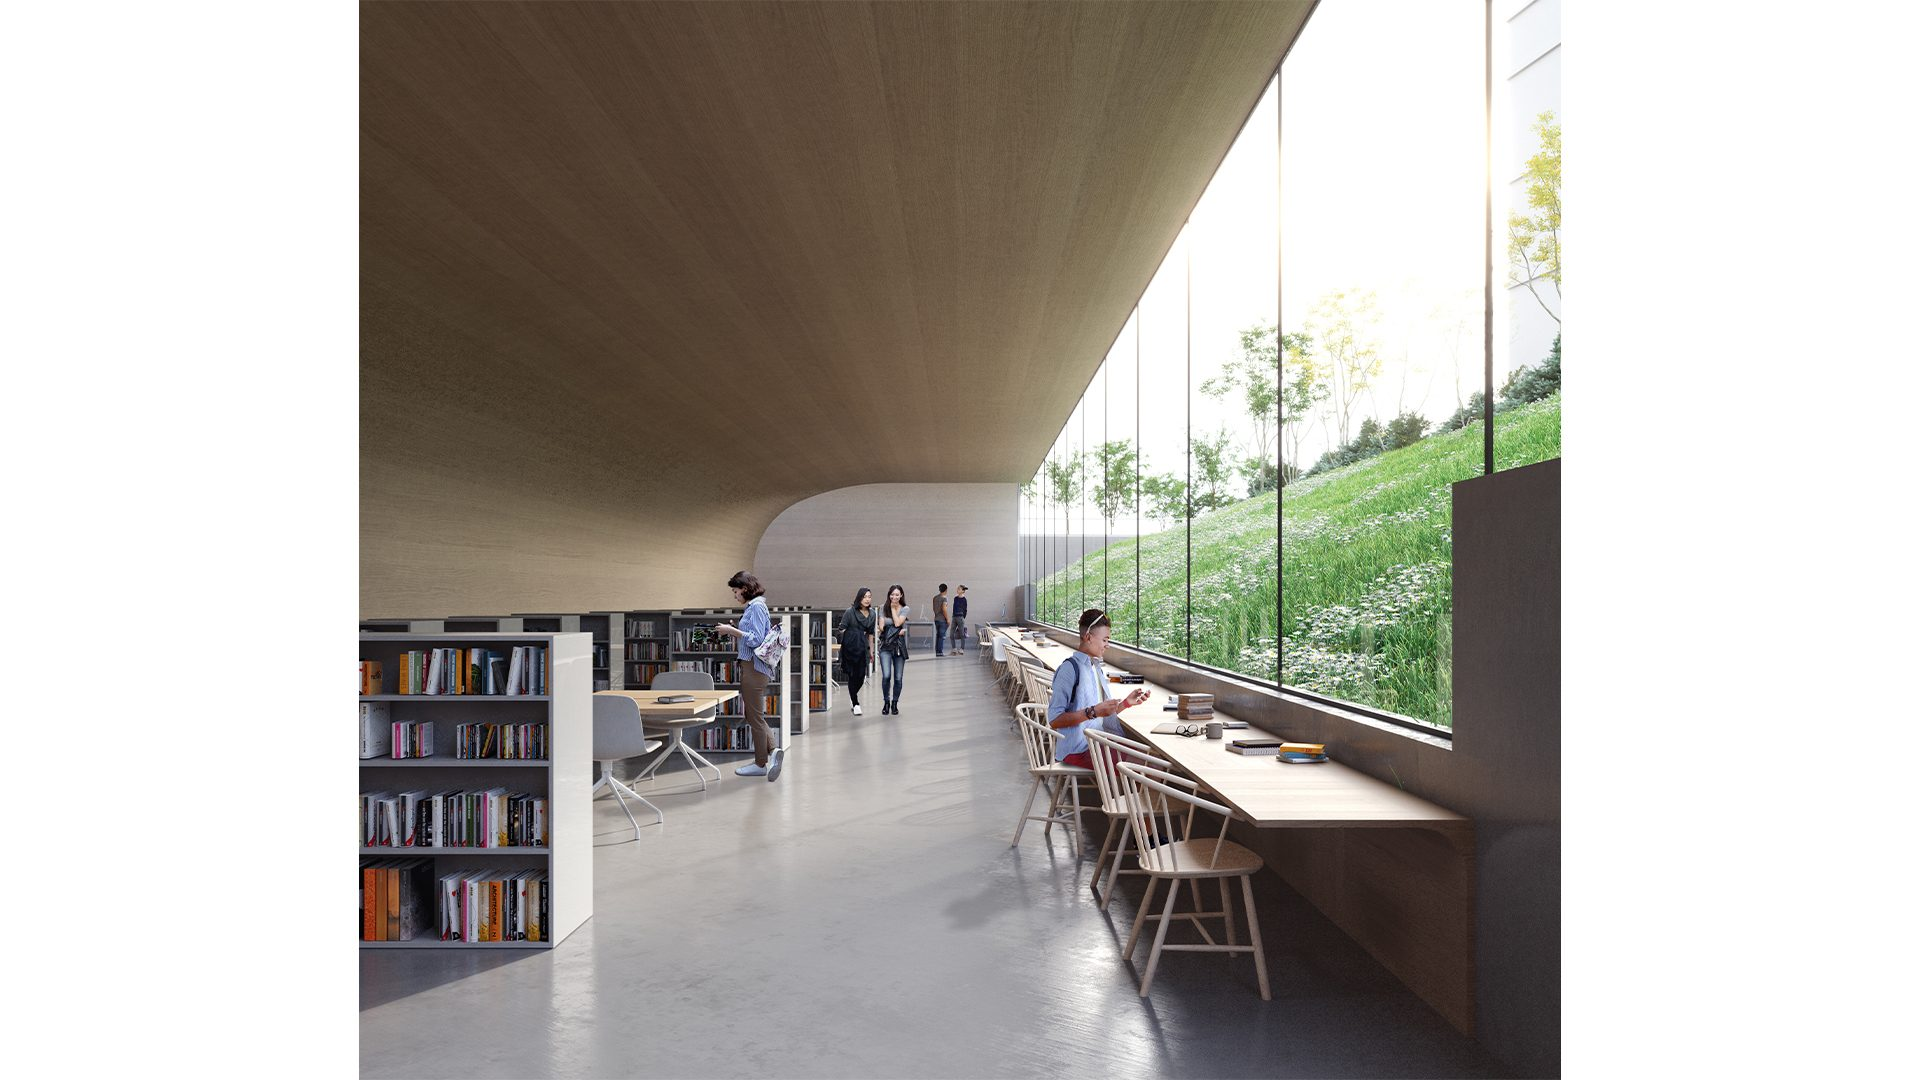 09_West Reading Room